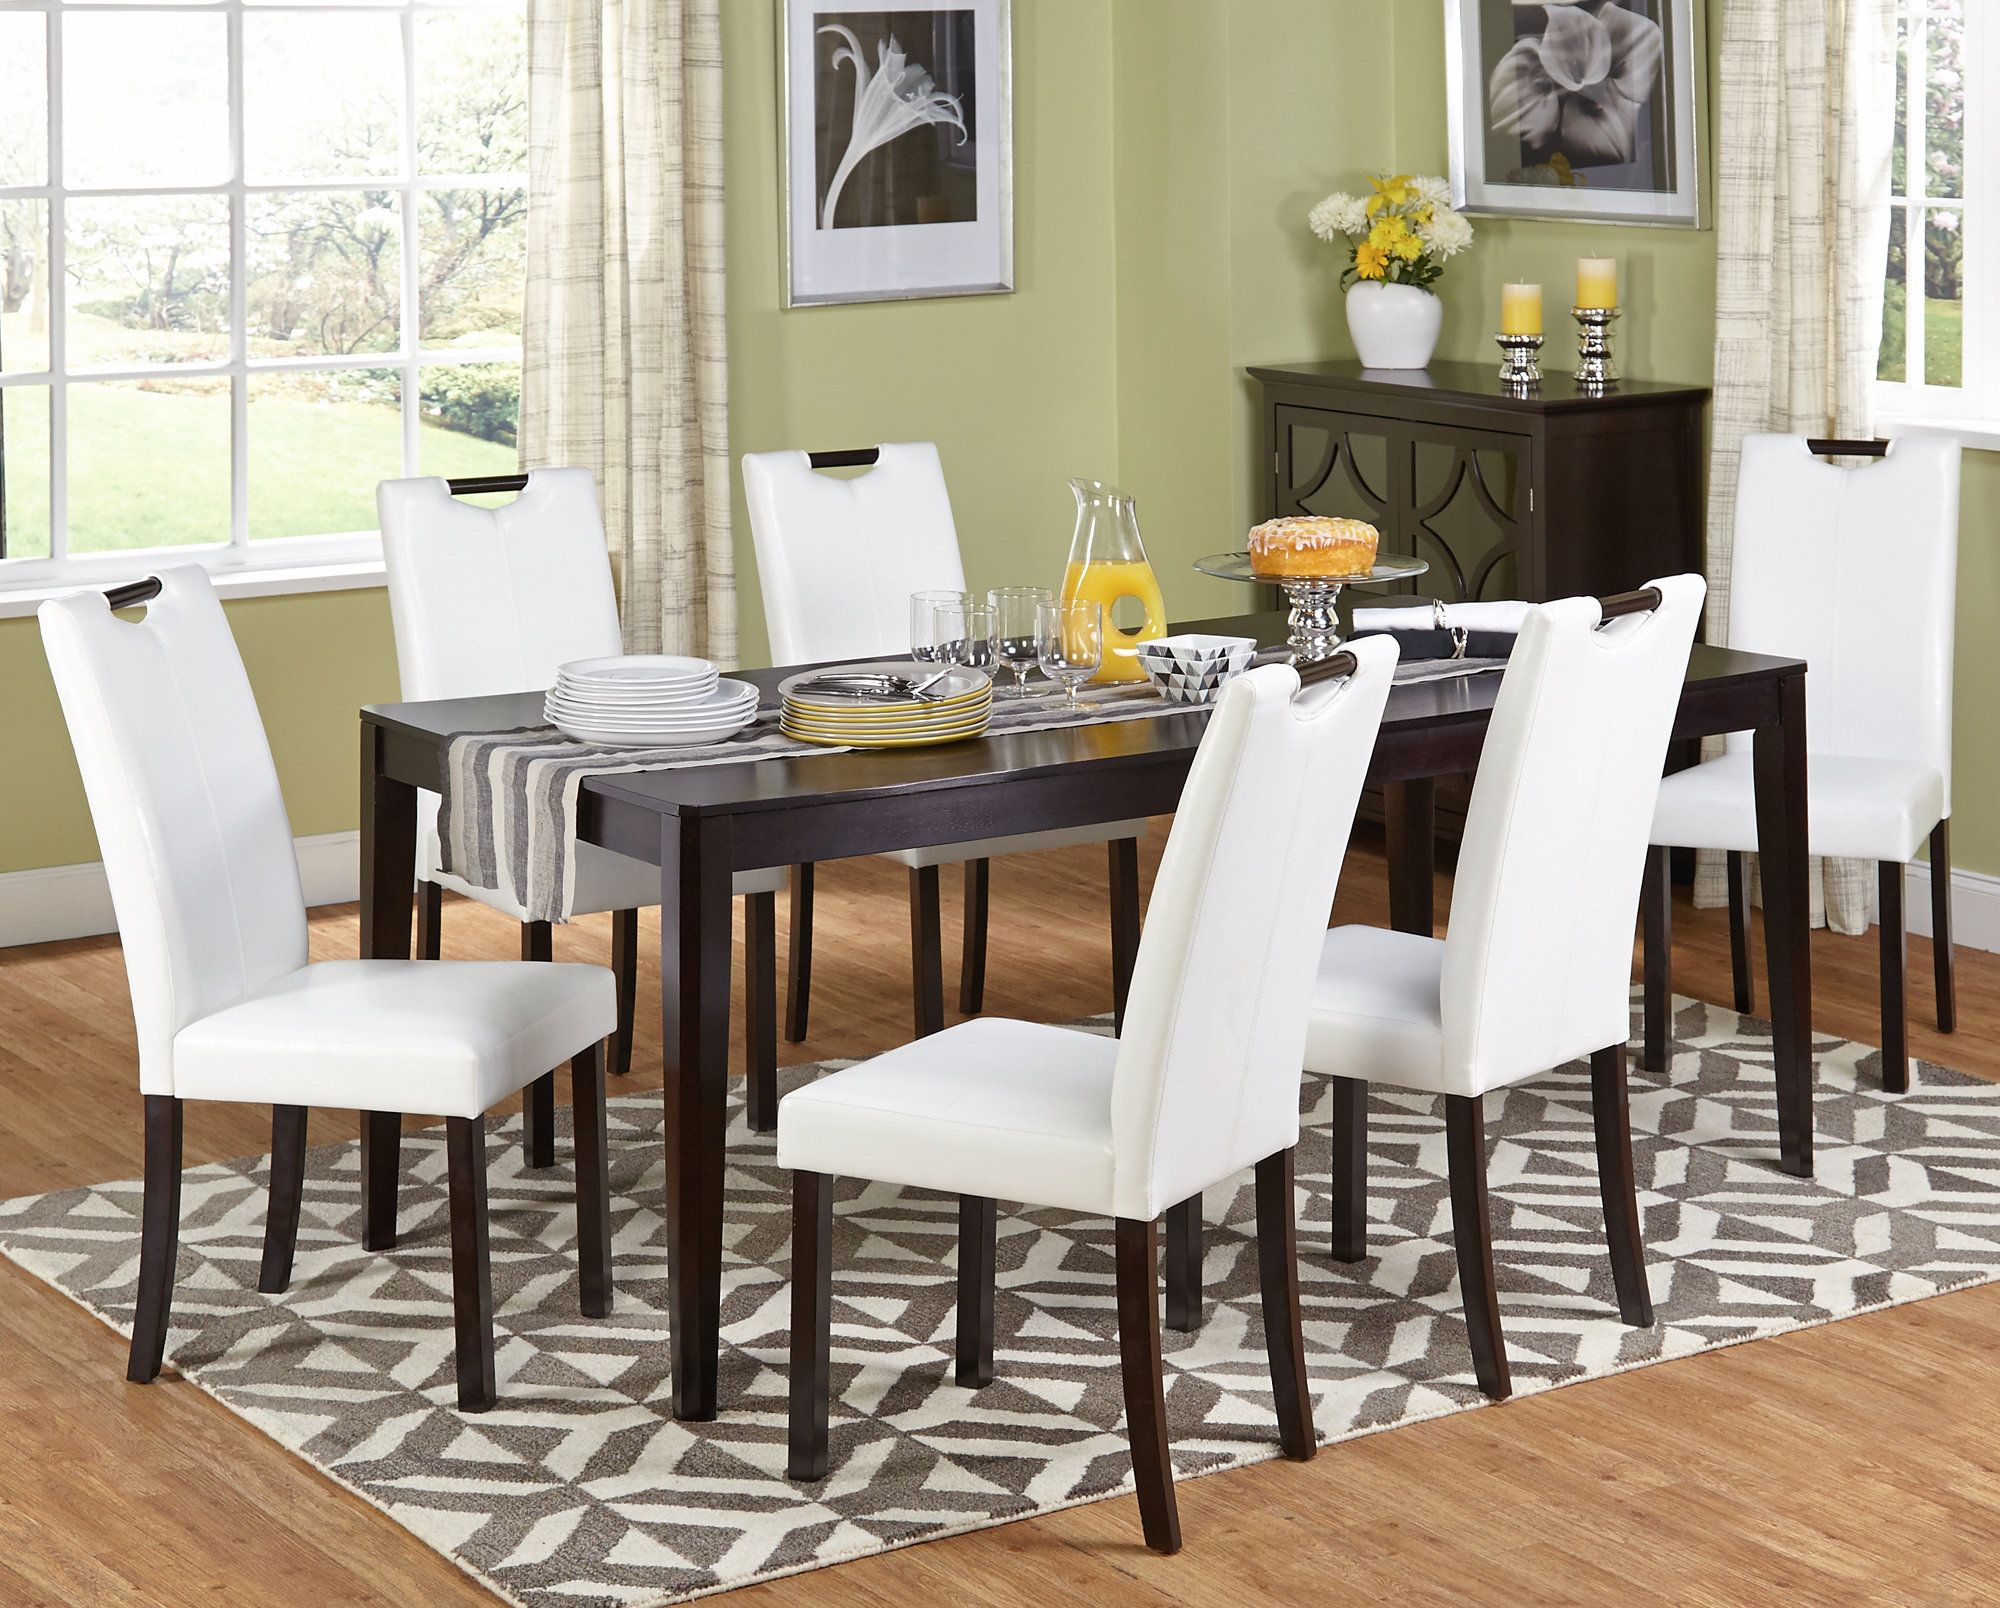 Cox 7 Piece Dining Set | Products | Pinterest